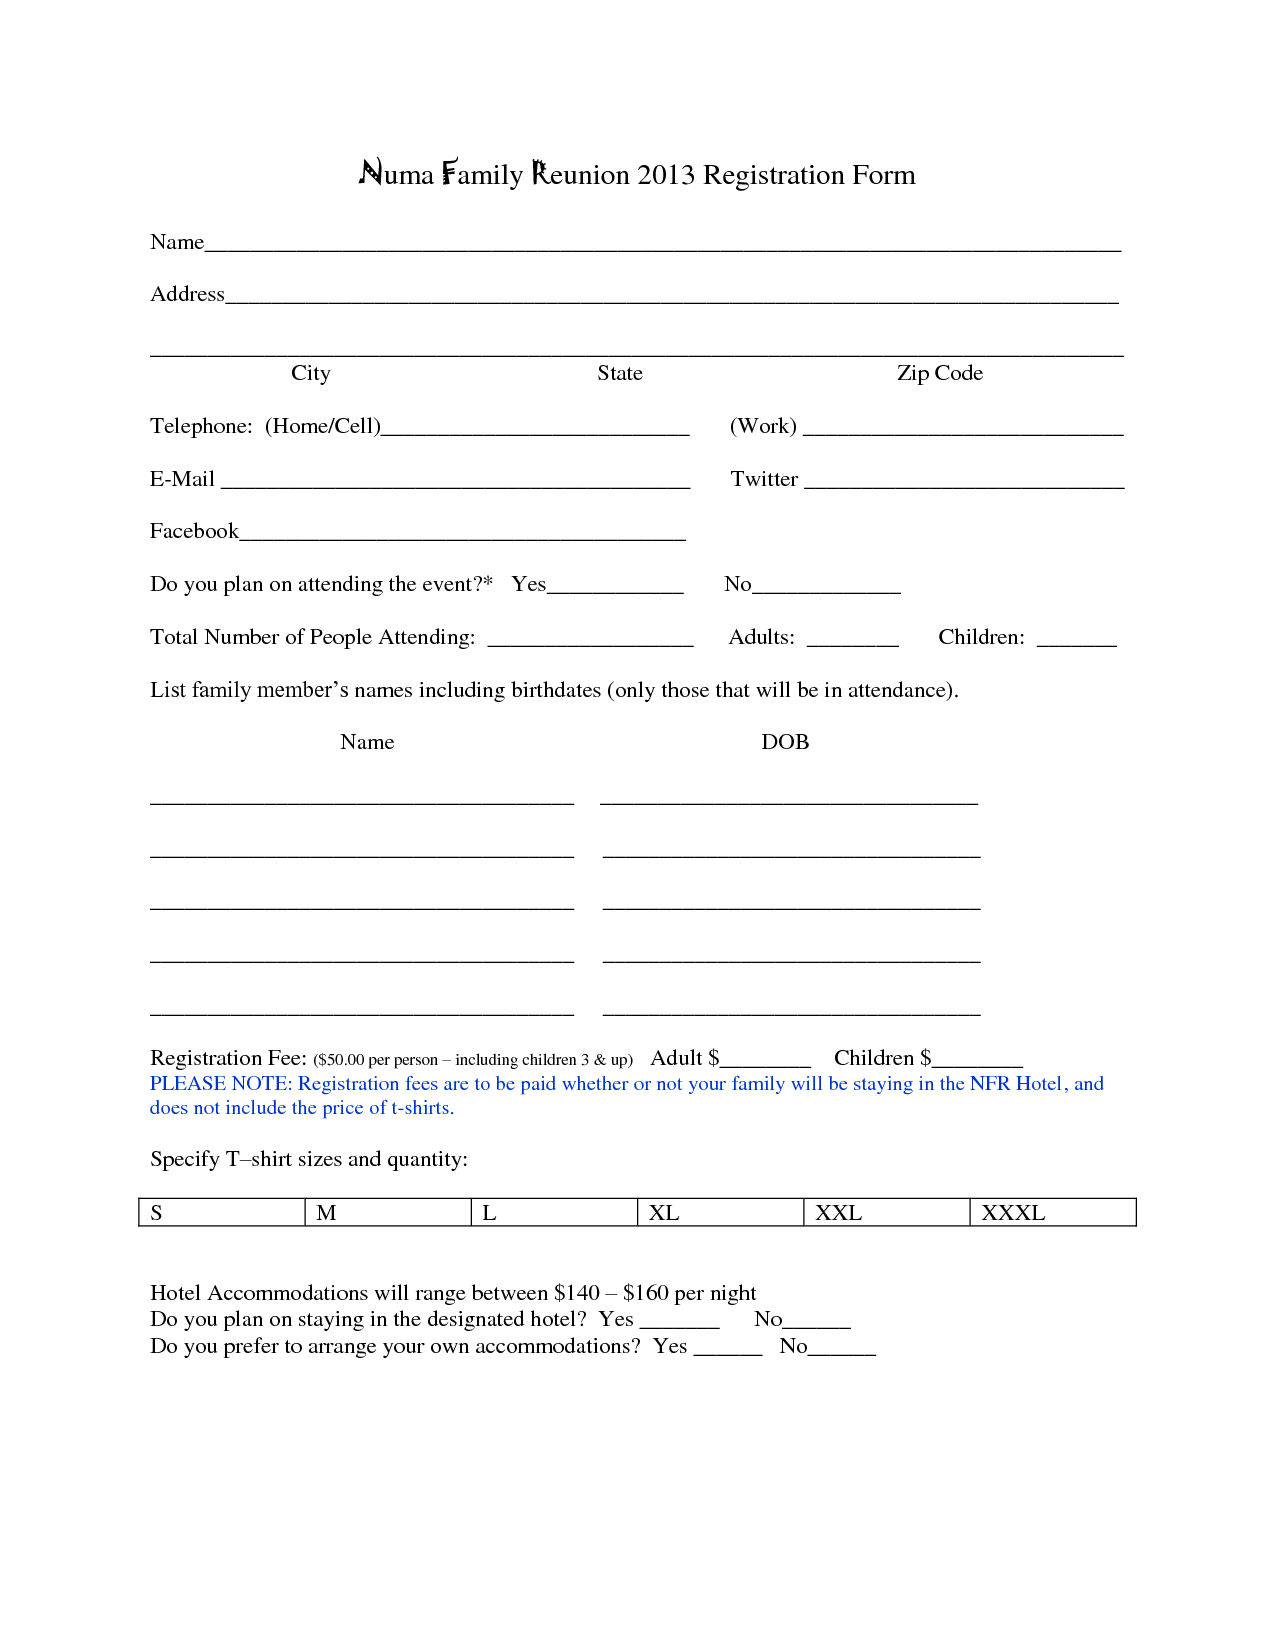 Family reunion registration form template family reunions family reunion registration form template falaconquin